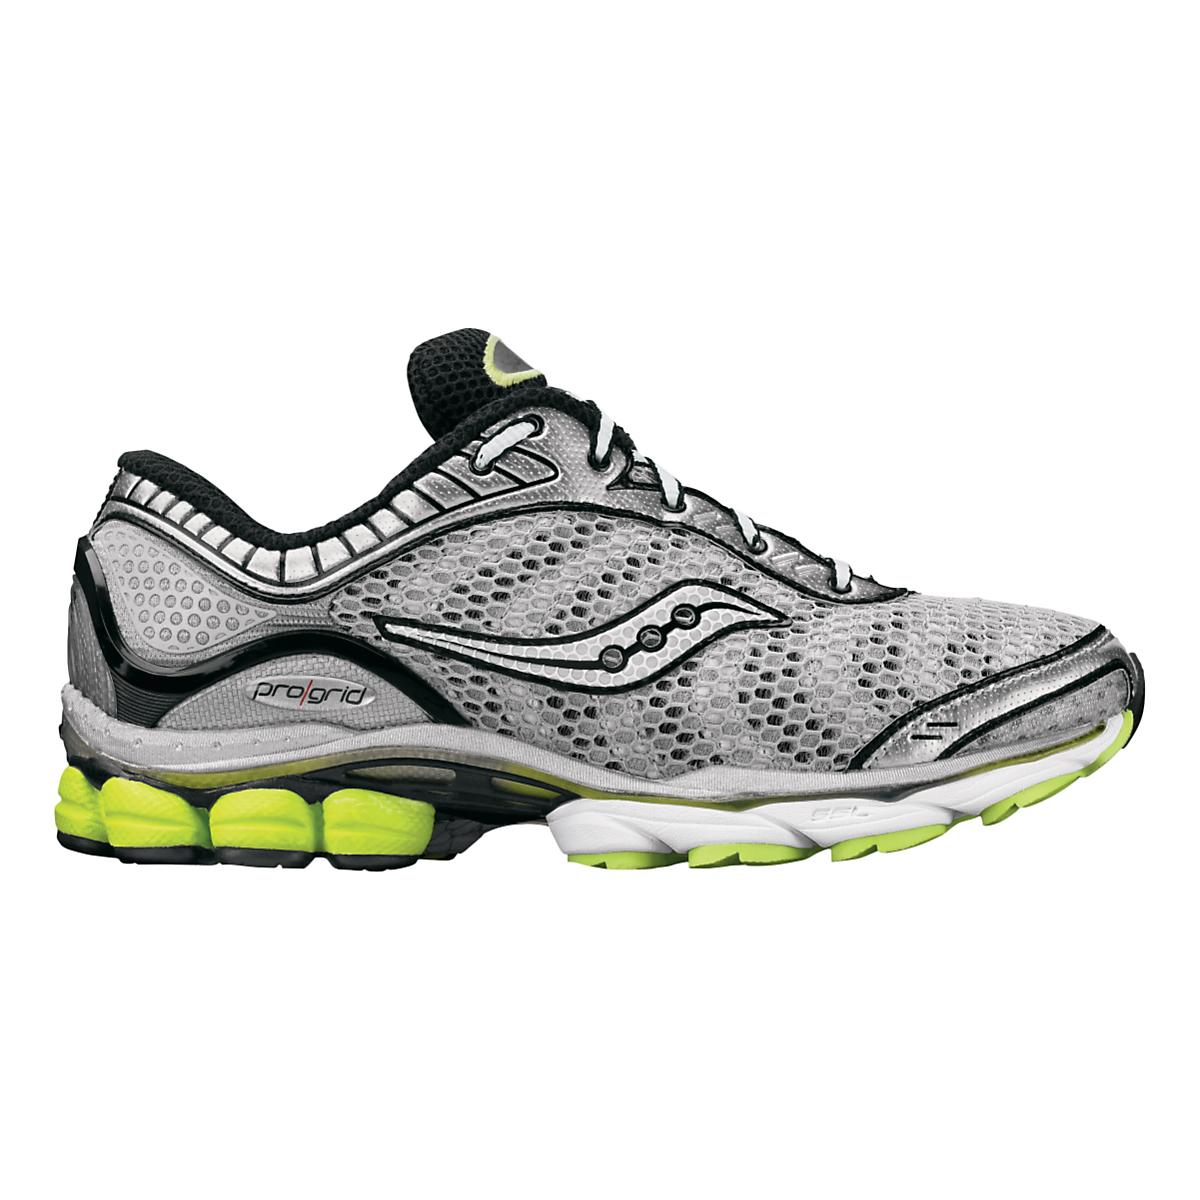 c994b402d36 Mens Saucony Progrid Paramount Running Shoe at Road Runner Sports